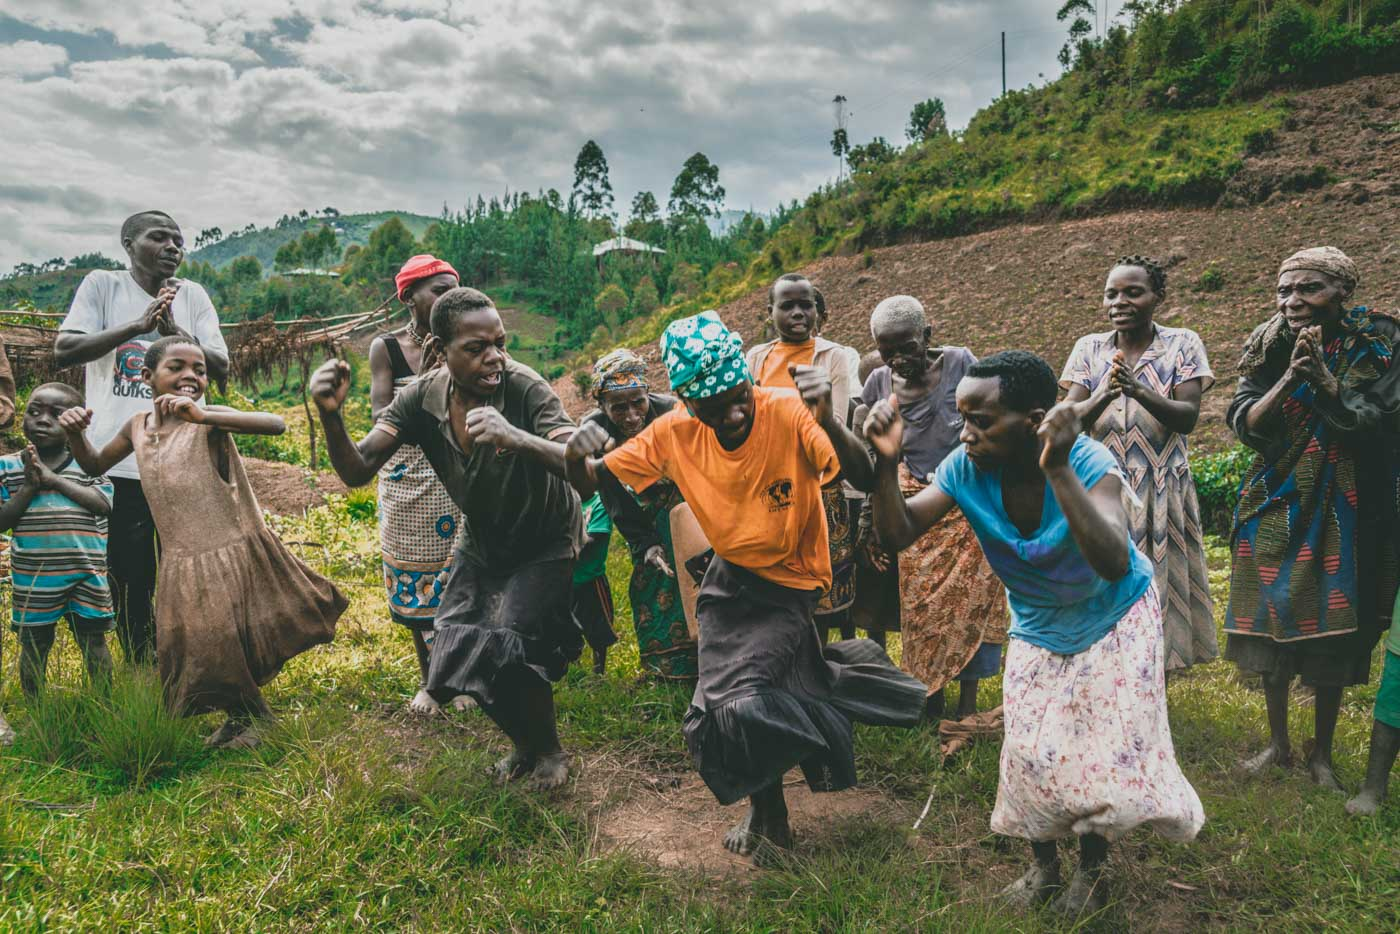 Batwa tribe on the outskirts of Bwindi National Park, Uganda